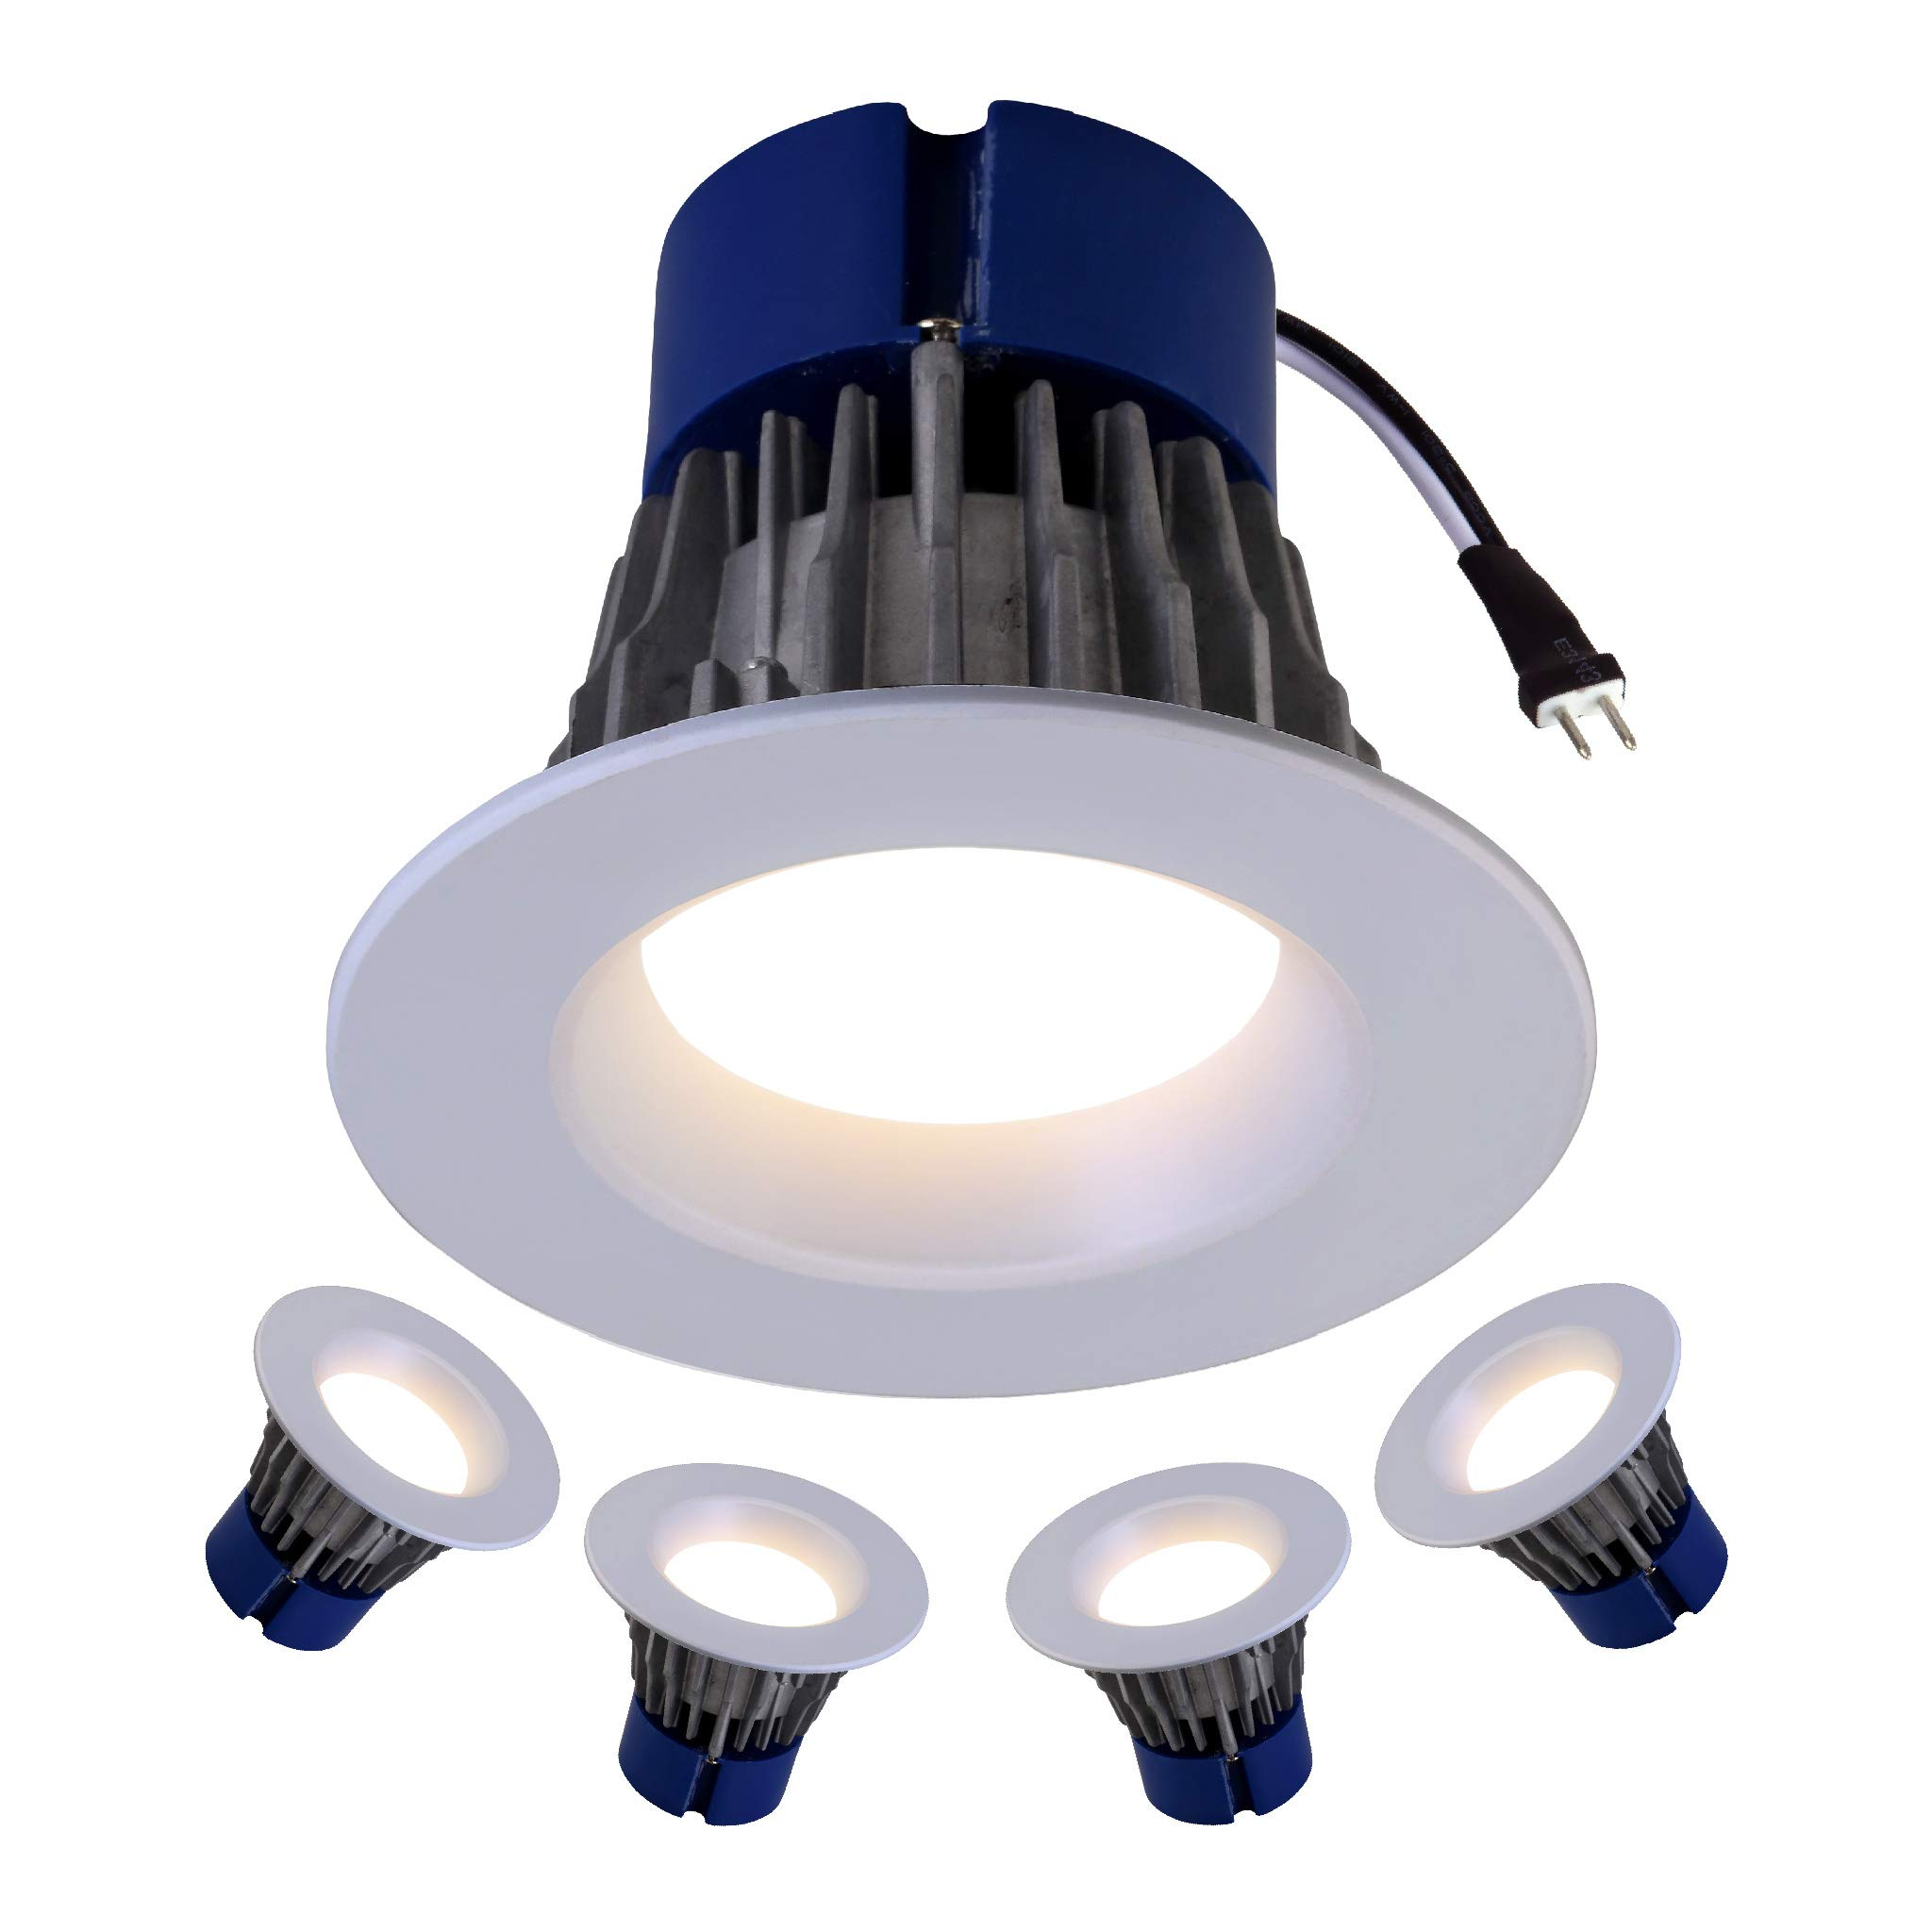 LED 4'' Inch Low Voltage Downlight (4 Pack) 12V; 3000K; Dimmable down to 5% ; 11W; 750 Lumens; Fits most MR-16 4'' Inch cans and works only with magnetic transformers; 5 Year Warranty by Quest